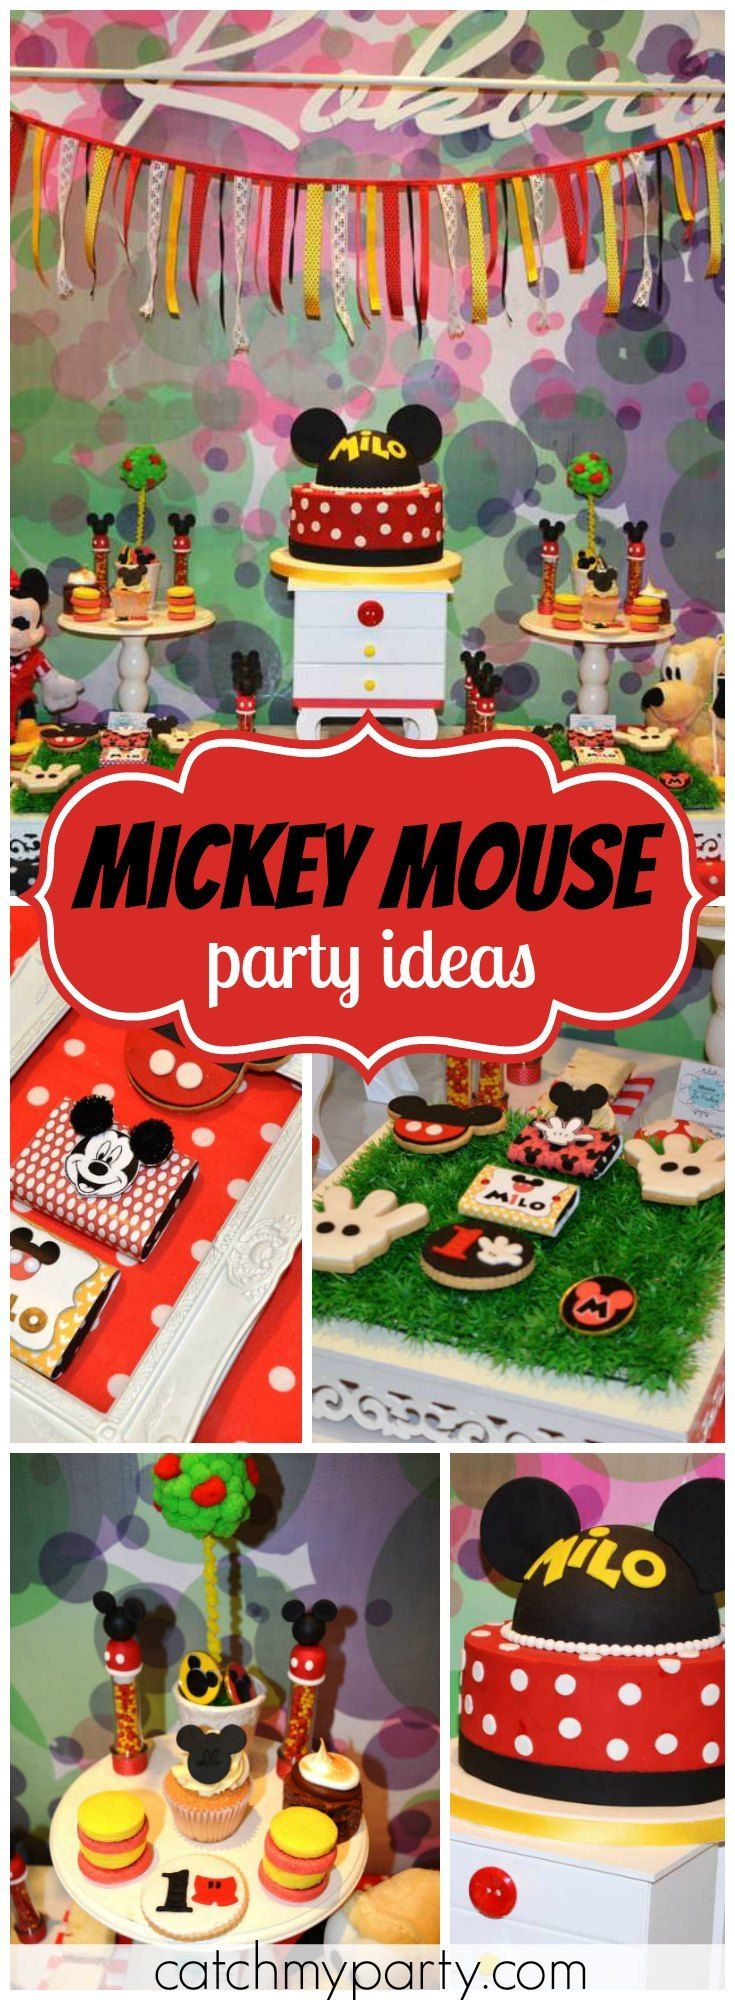 808 Best Mickey Mouse Party Ideas Images On Pinterest